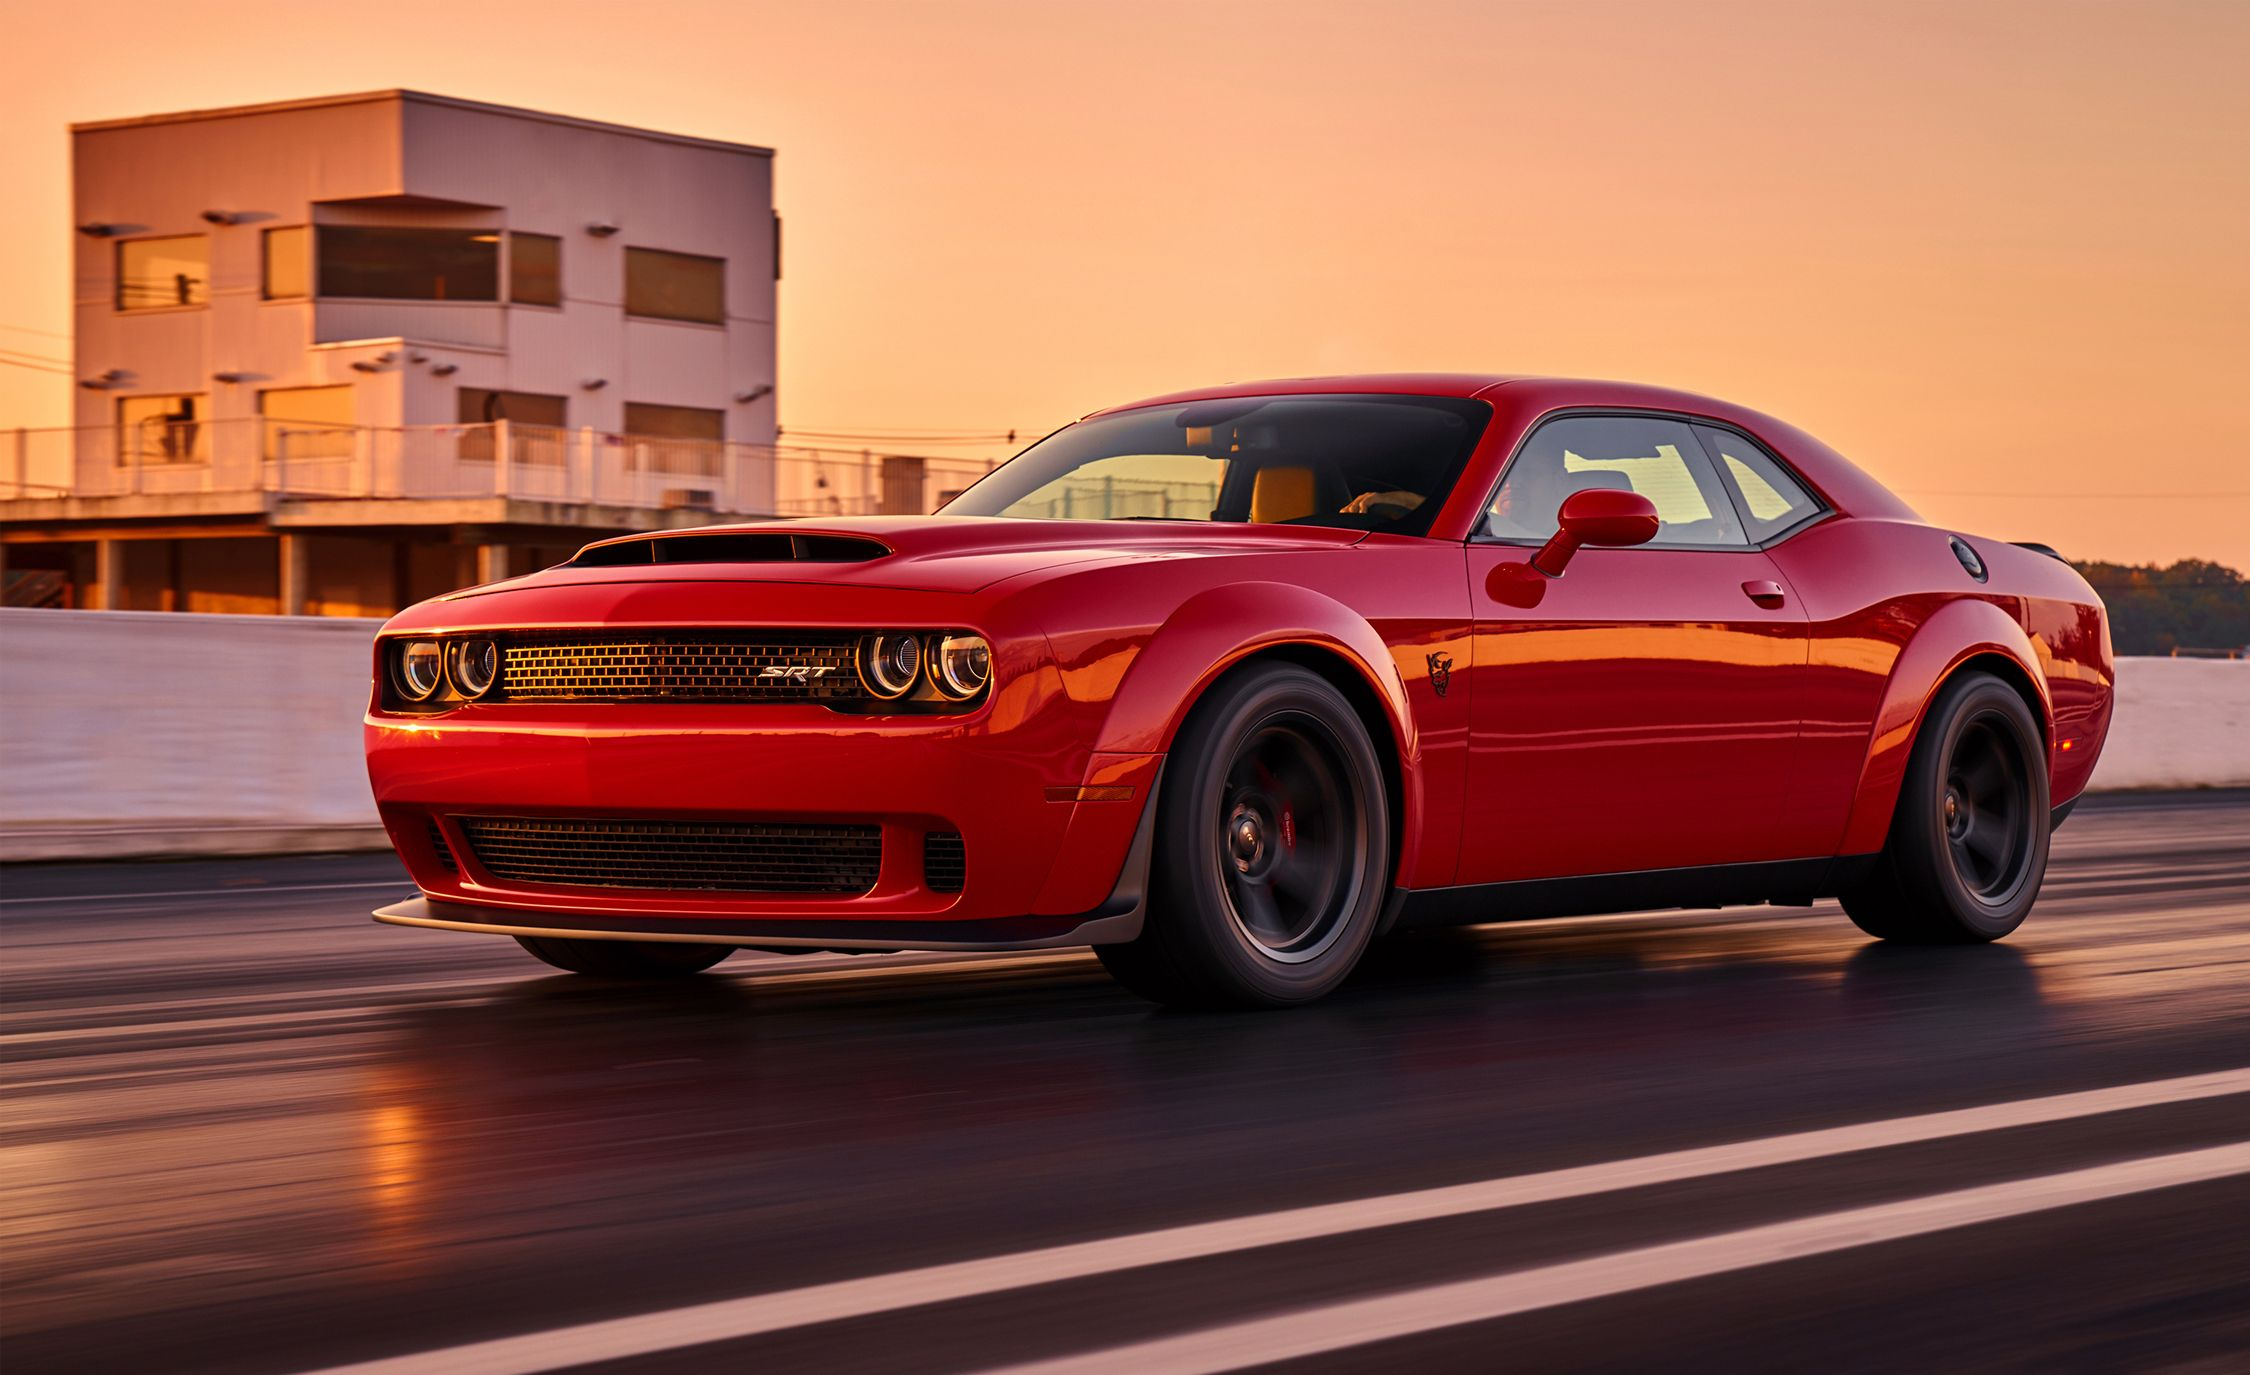 2018 Dodge Challenger SRT Demon: An 840-HP Monster!